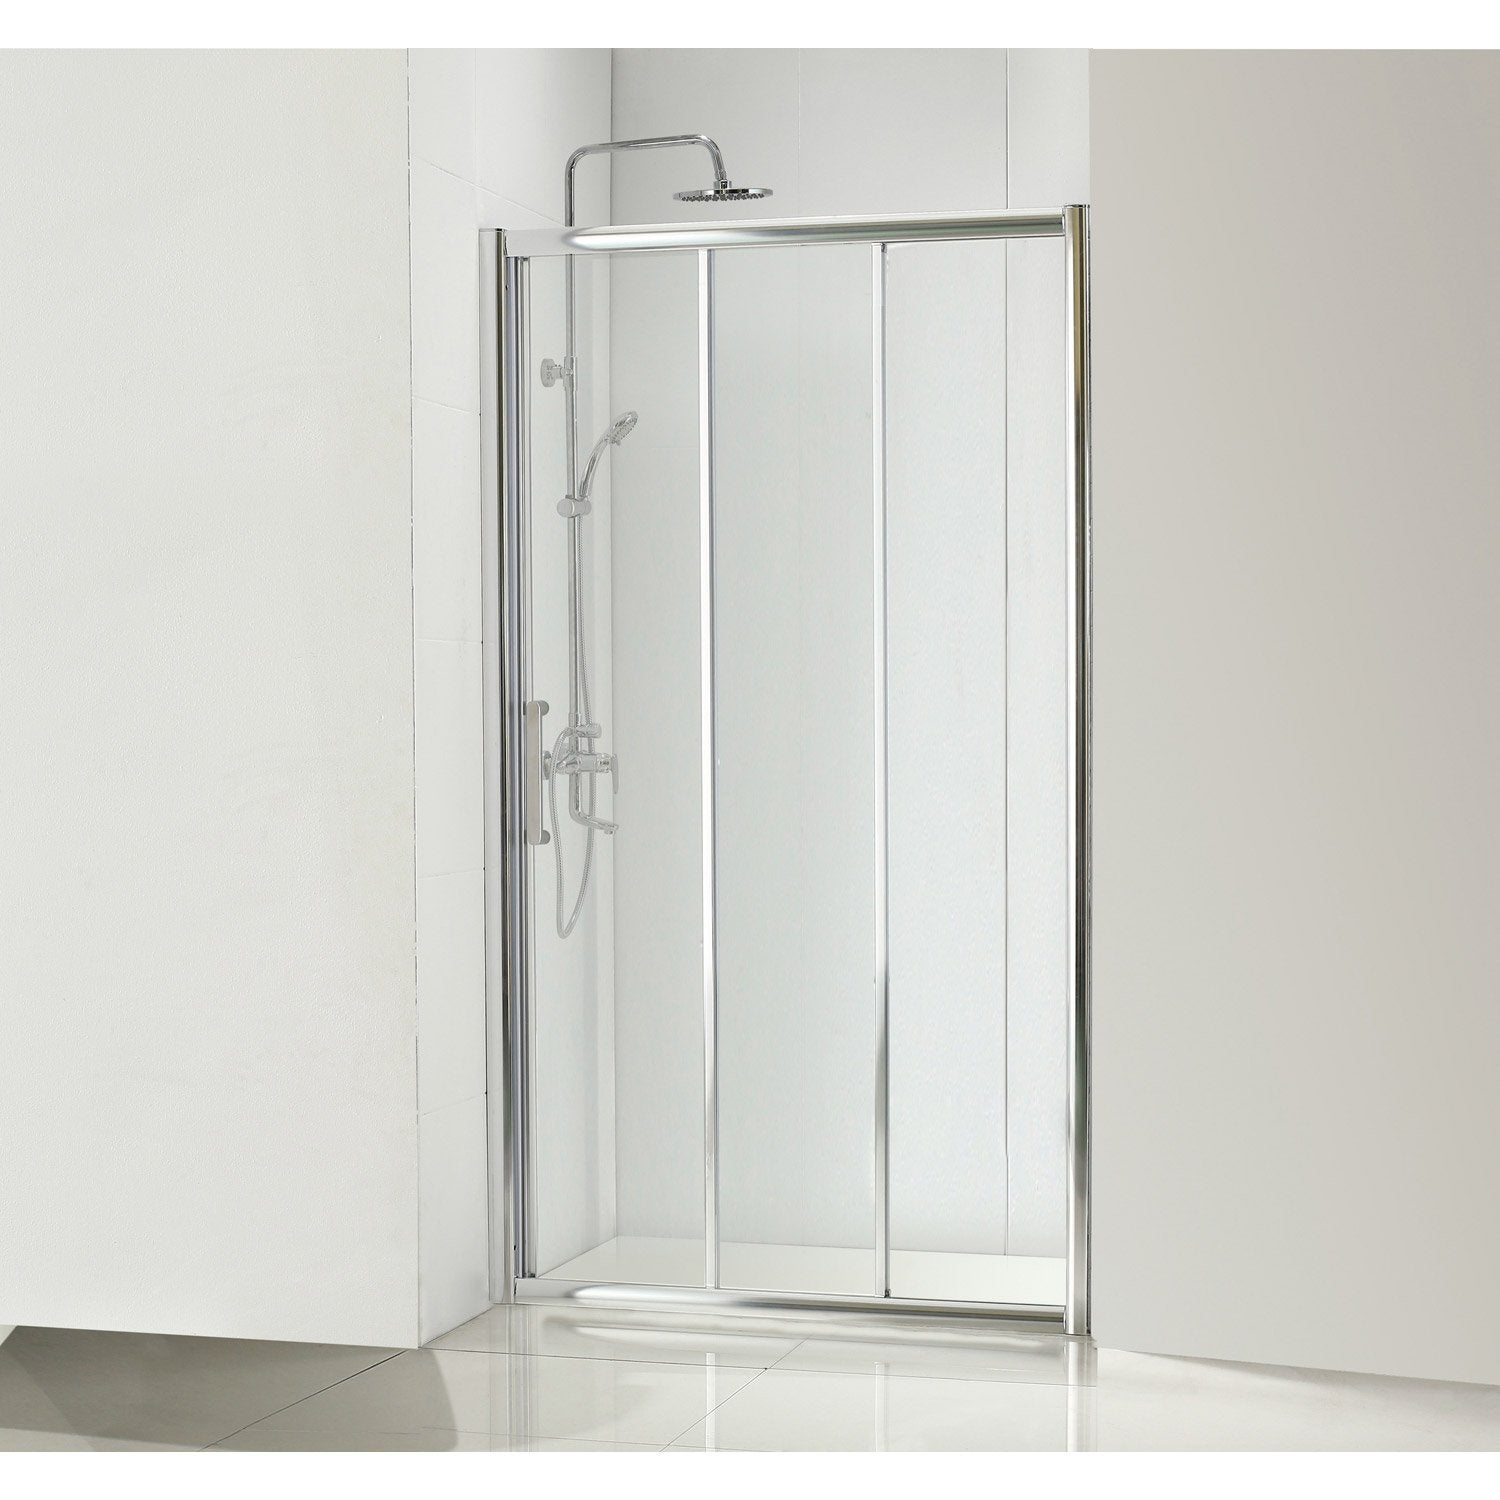 porte de douche coulissante 90 cm transparent quad leroy merlin. Black Bedroom Furniture Sets. Home Design Ideas